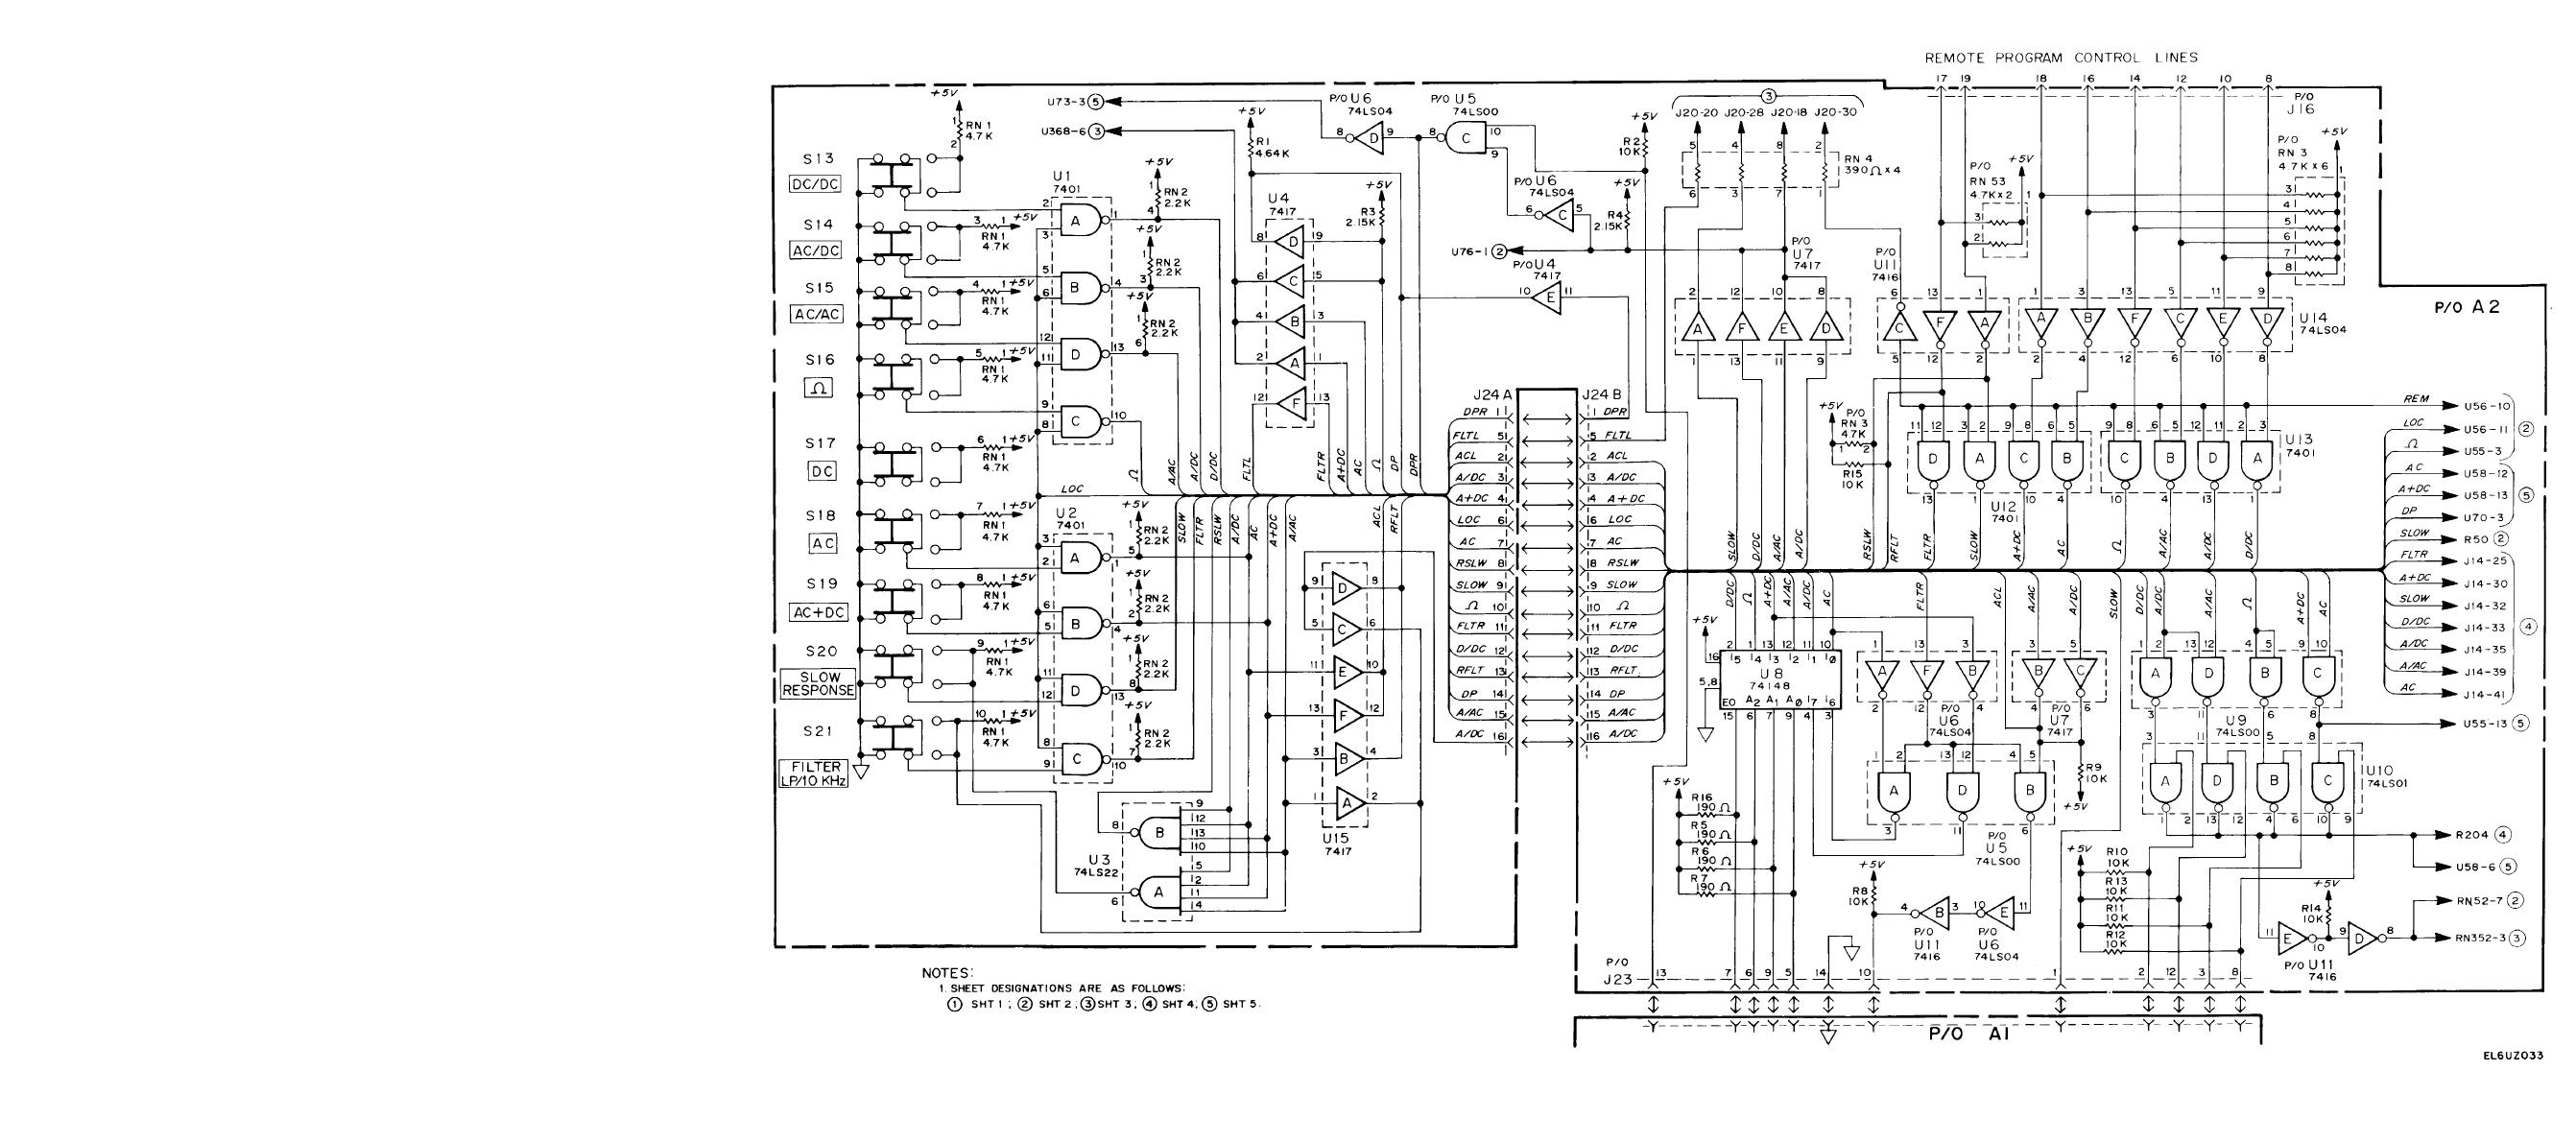 Figure FO-7. Function Select Logic (A2) Schematic Diagram